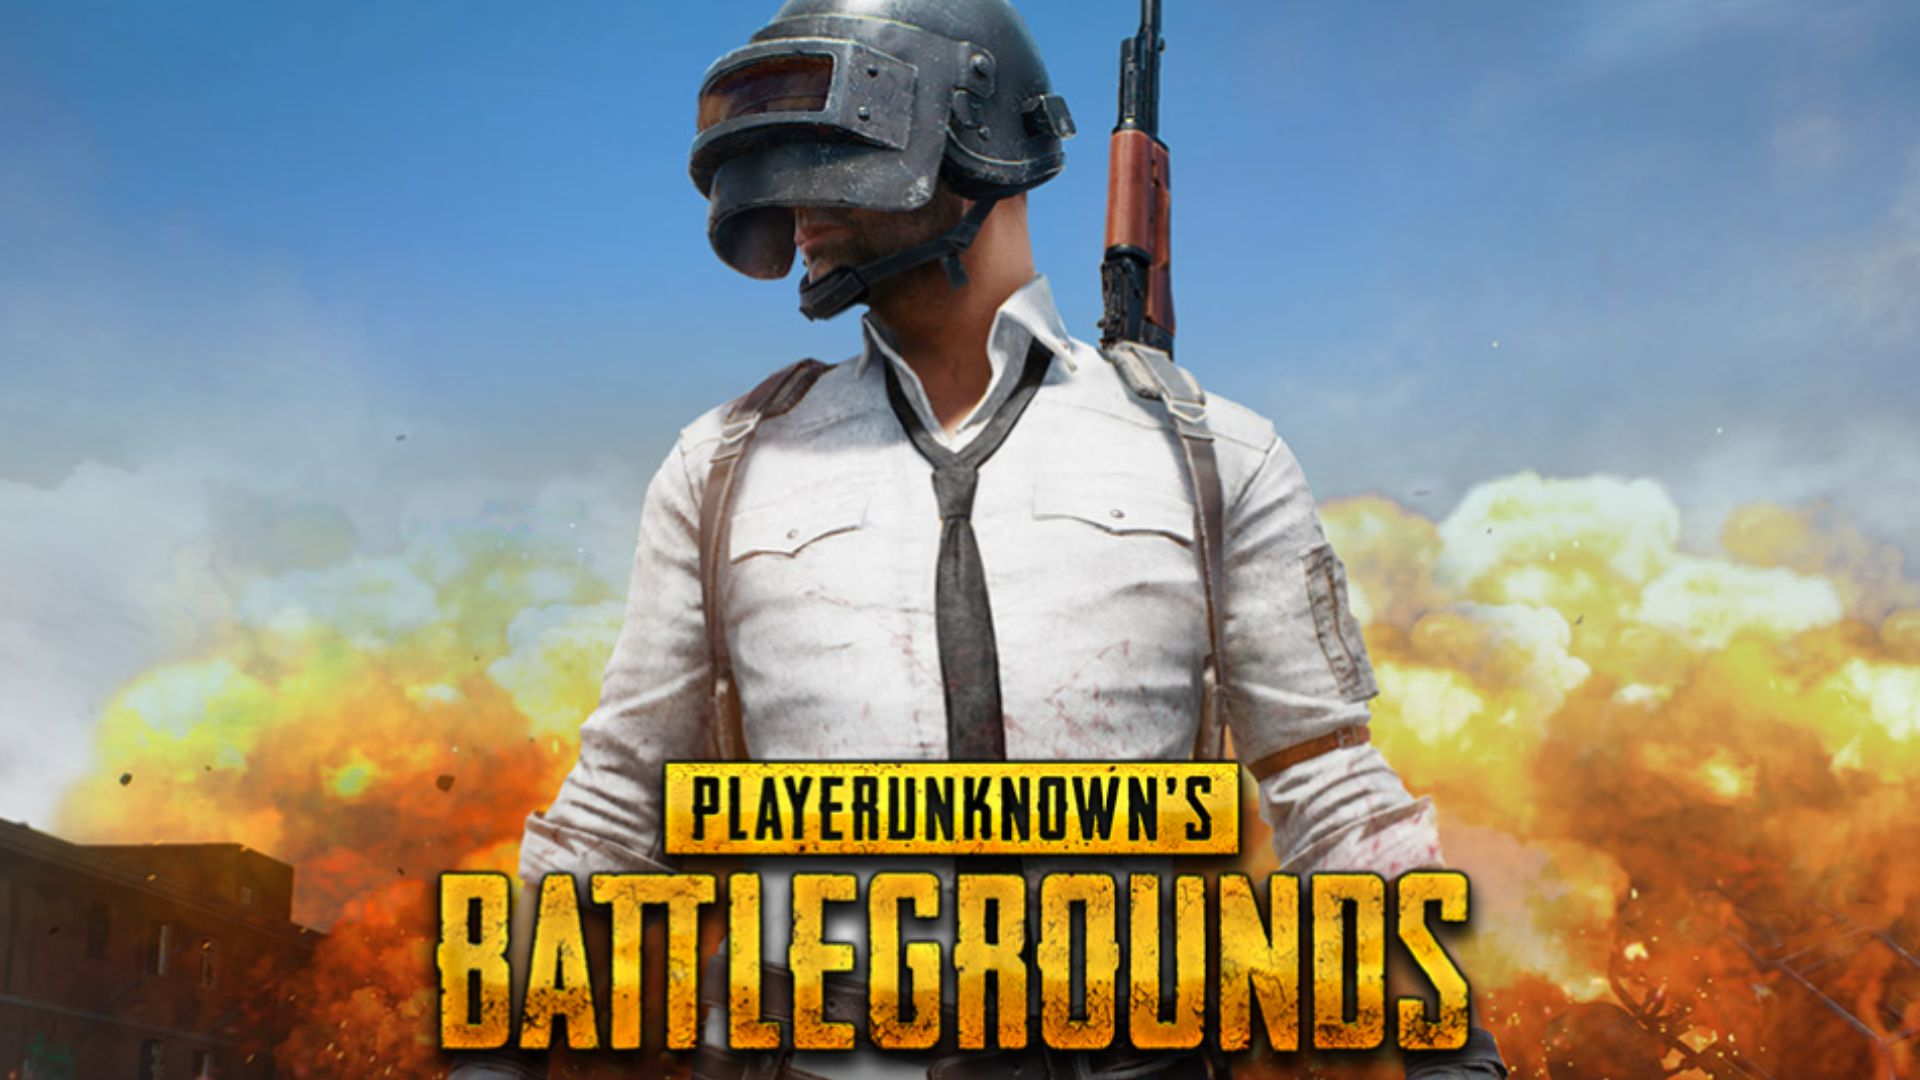 Pubg Mobile Full Screen Wallpapers: 初心者ゲーム攻略サイト